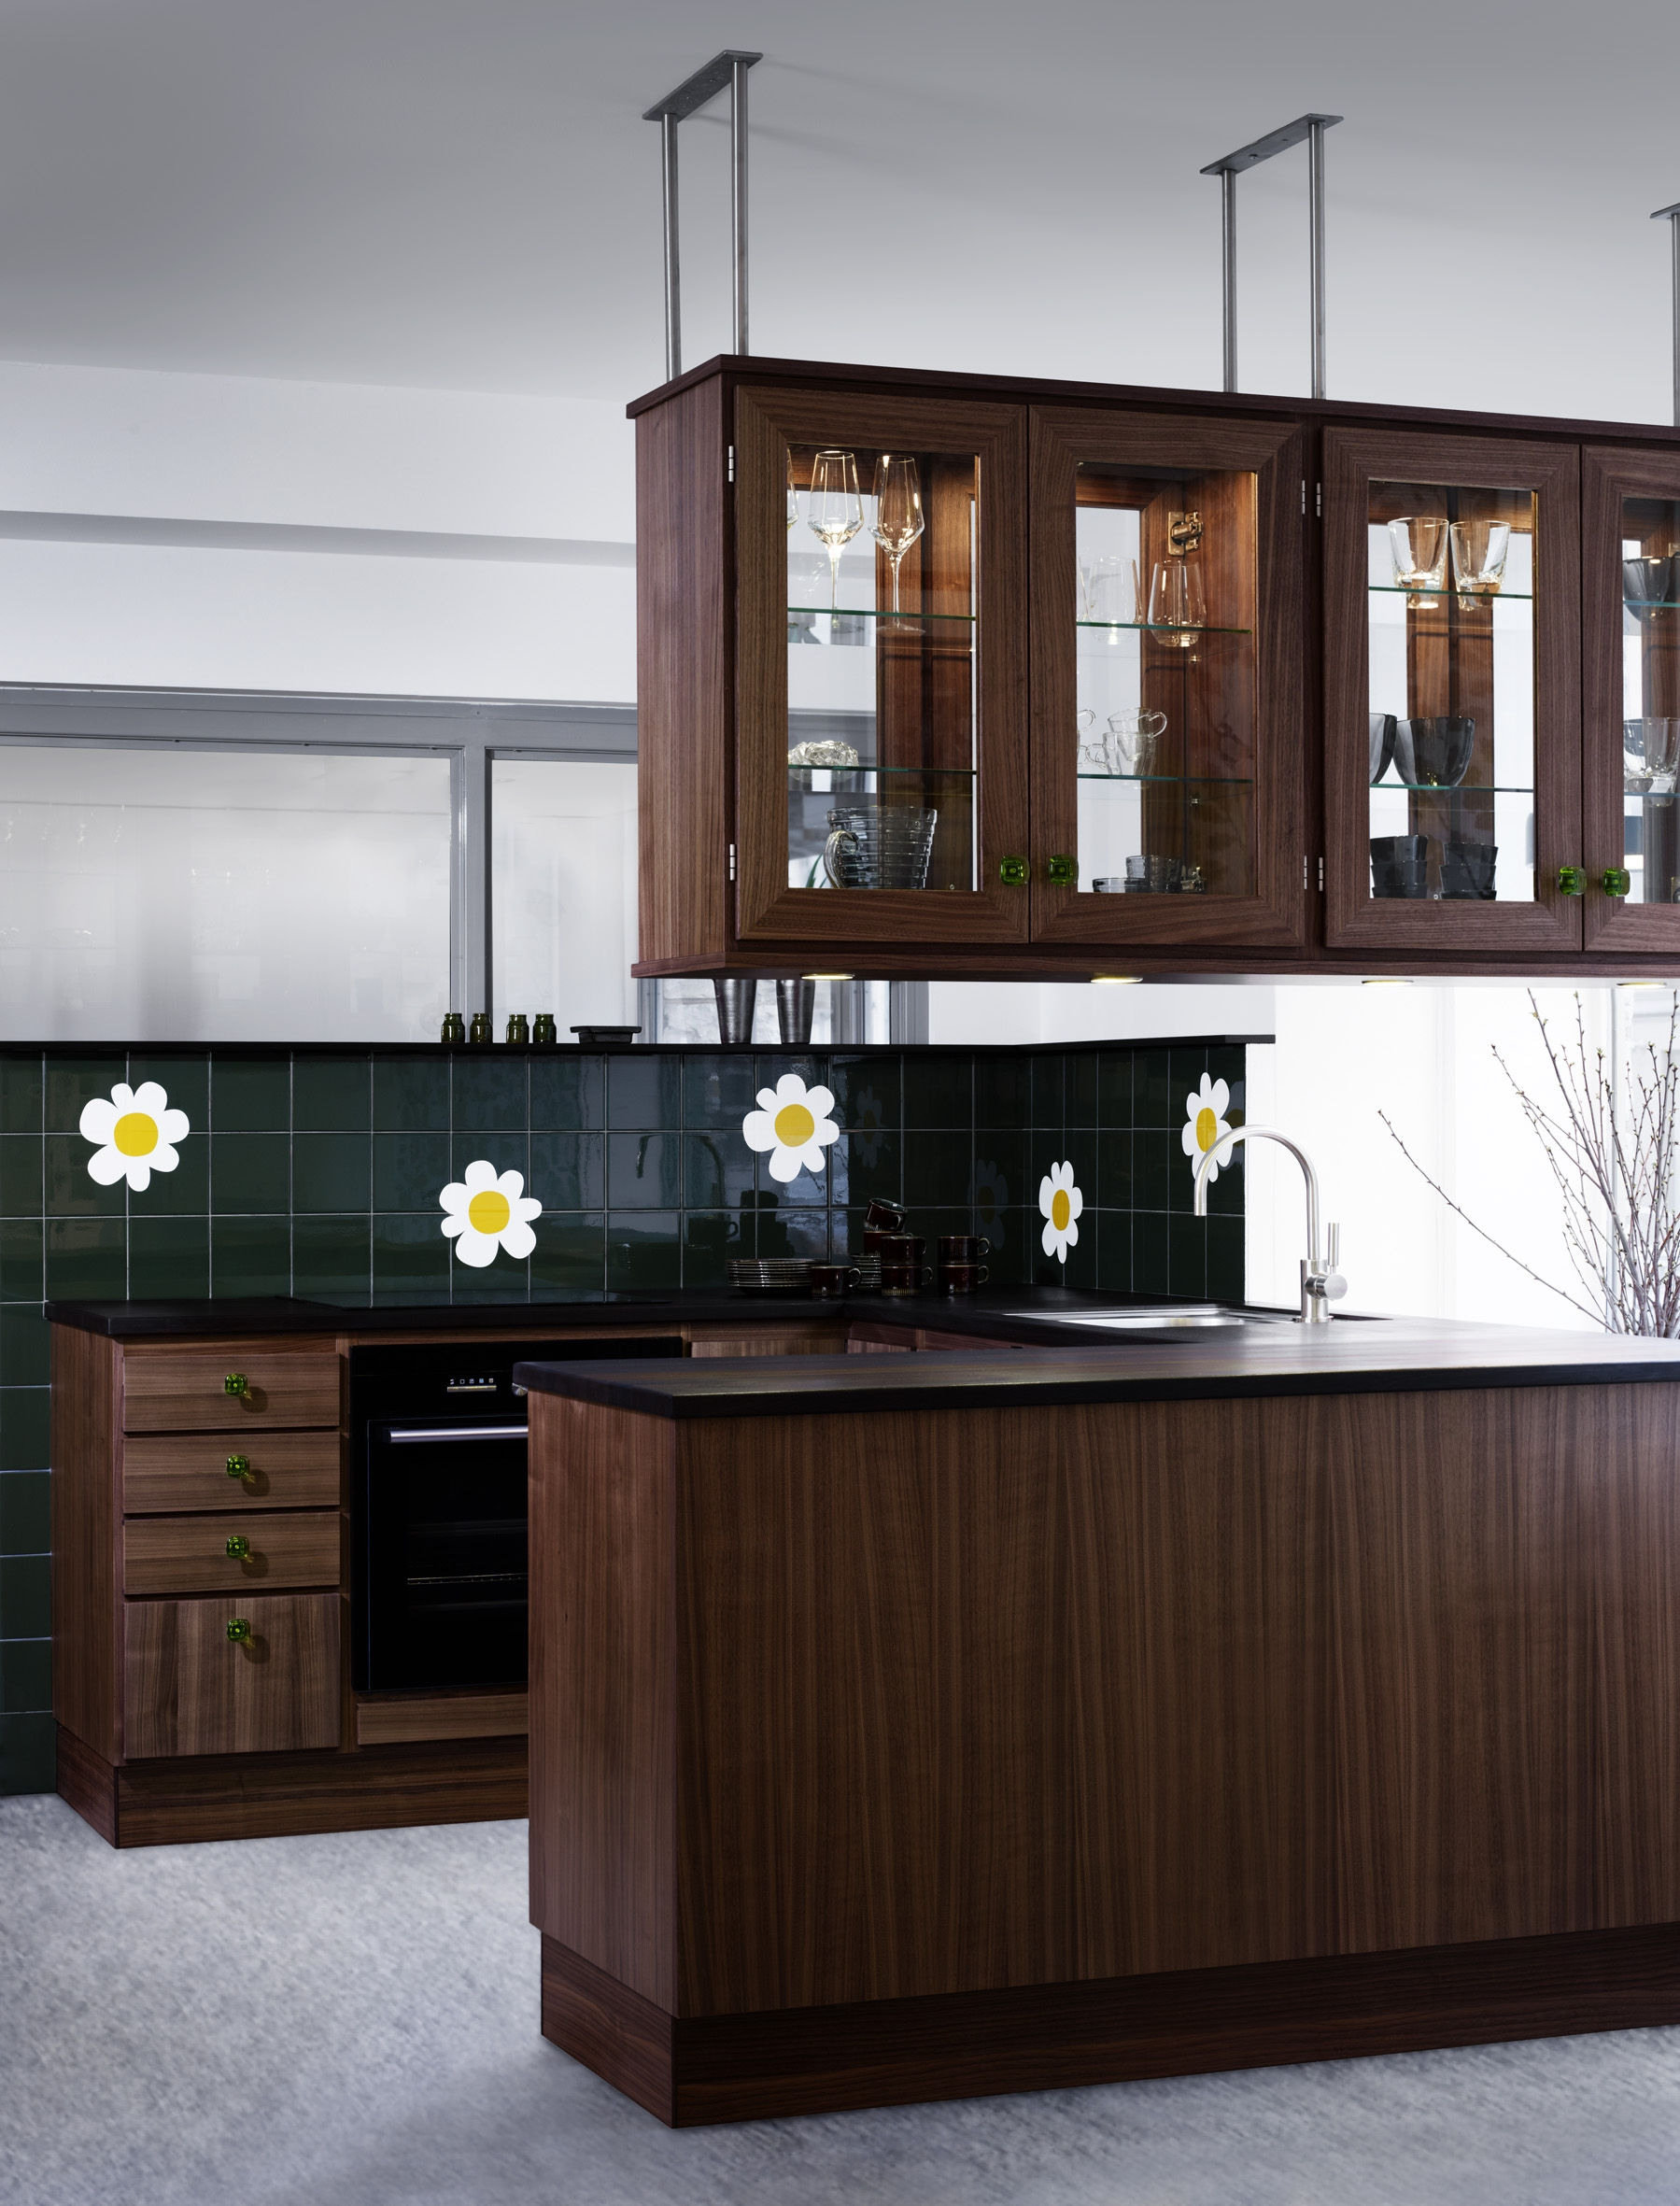 Kv num launches 39 70s inspired kitchen design during for Kitchen design 70s